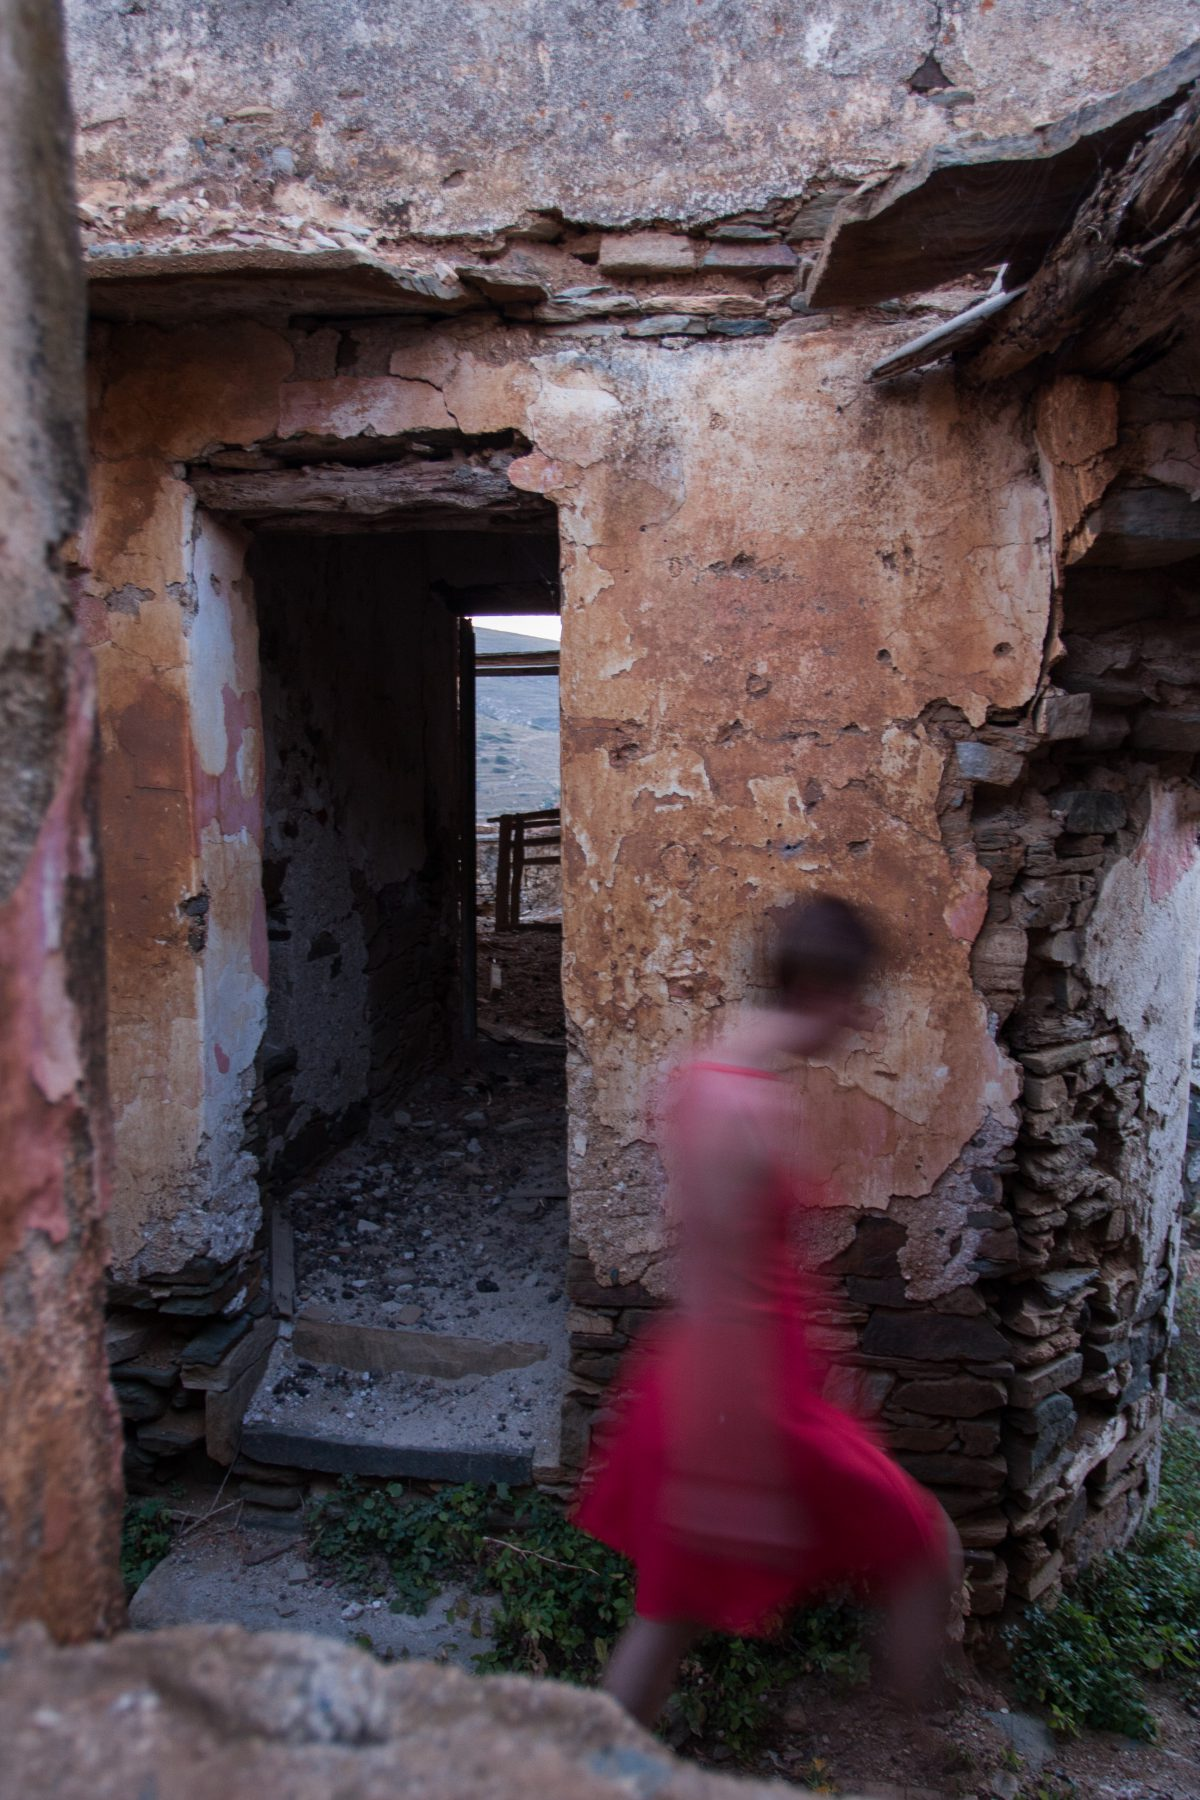 room, village, alley, female, dress, decay